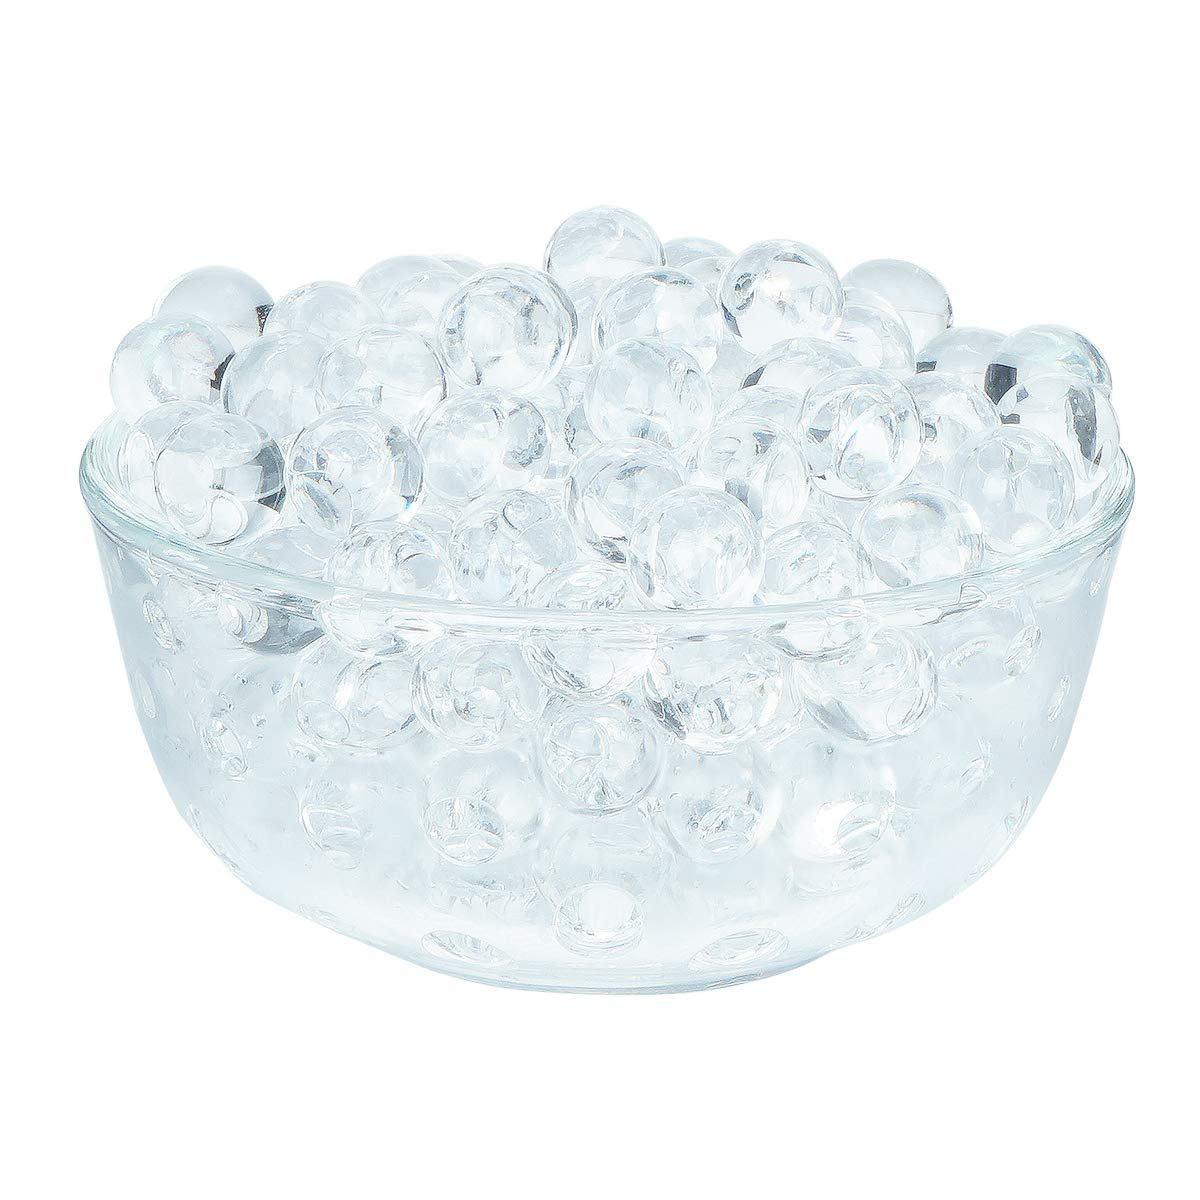 LOVOUS 7000 Pcs Water Beads, Crystal Soil Water Bead Gel, Wedding Decoration Vase Filler - Furniture Decorative Vase Filler, All Occasion Table Scatters Centerpiece Decorations(Clear)